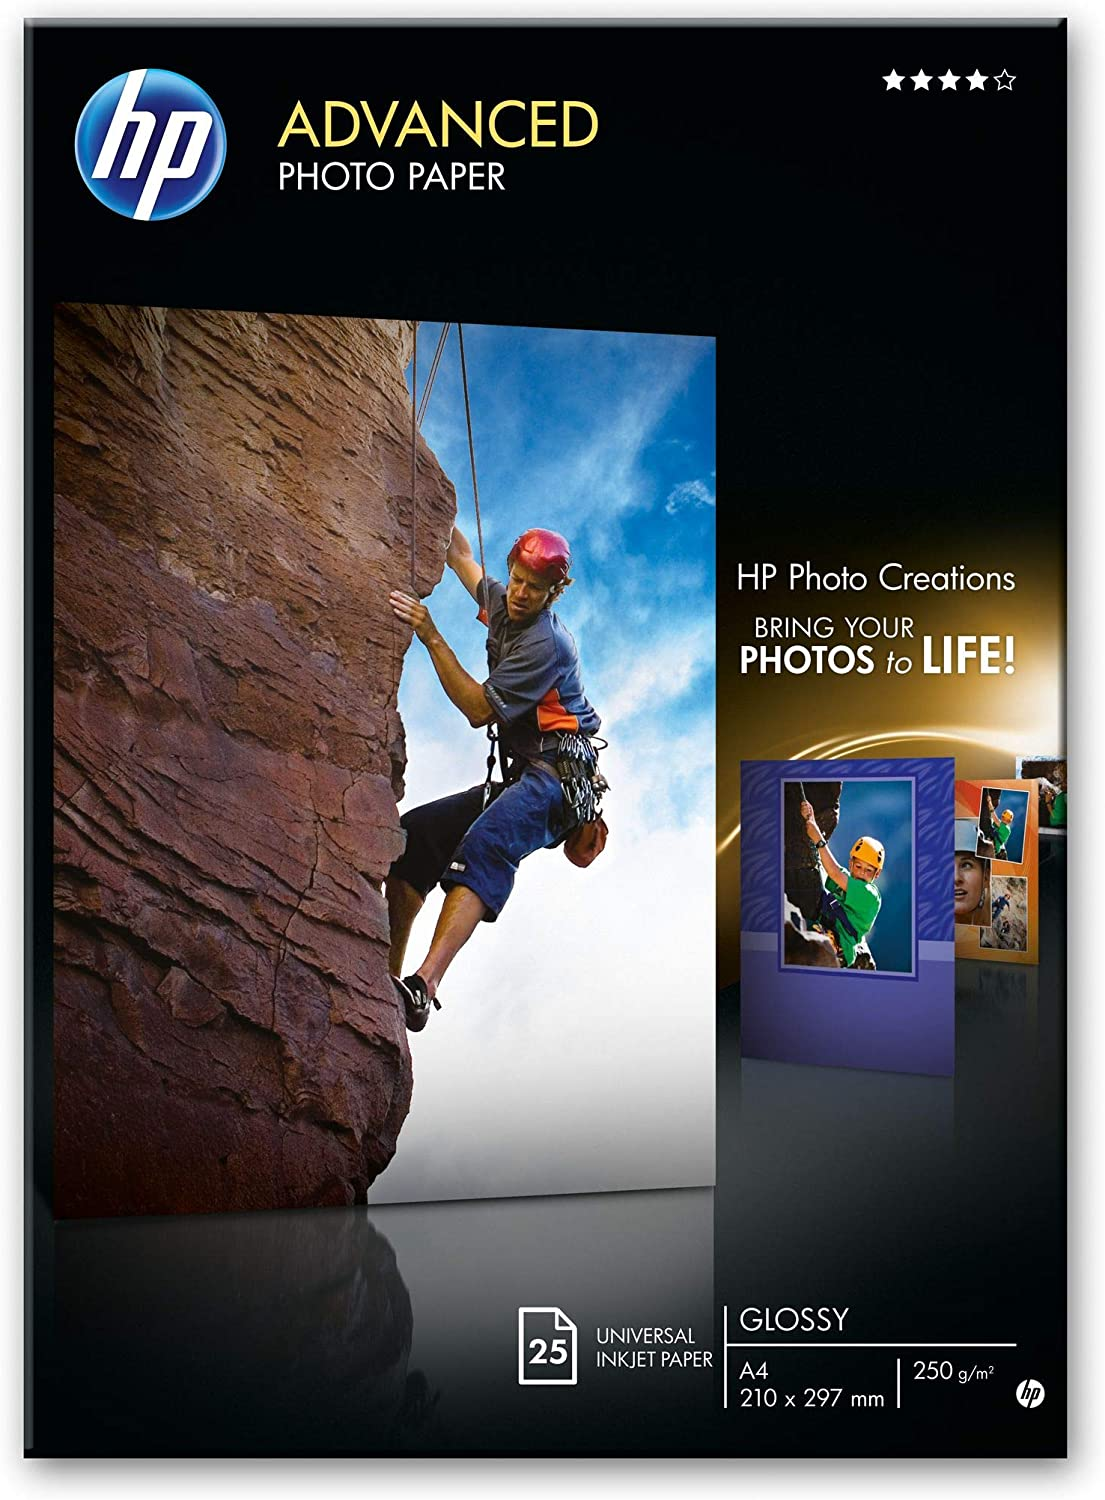 HP Q5456A, A4 210 x 297 mm, Advanced Glossy Photo Paper, 250 gsm, 25 Sheets uk reviews